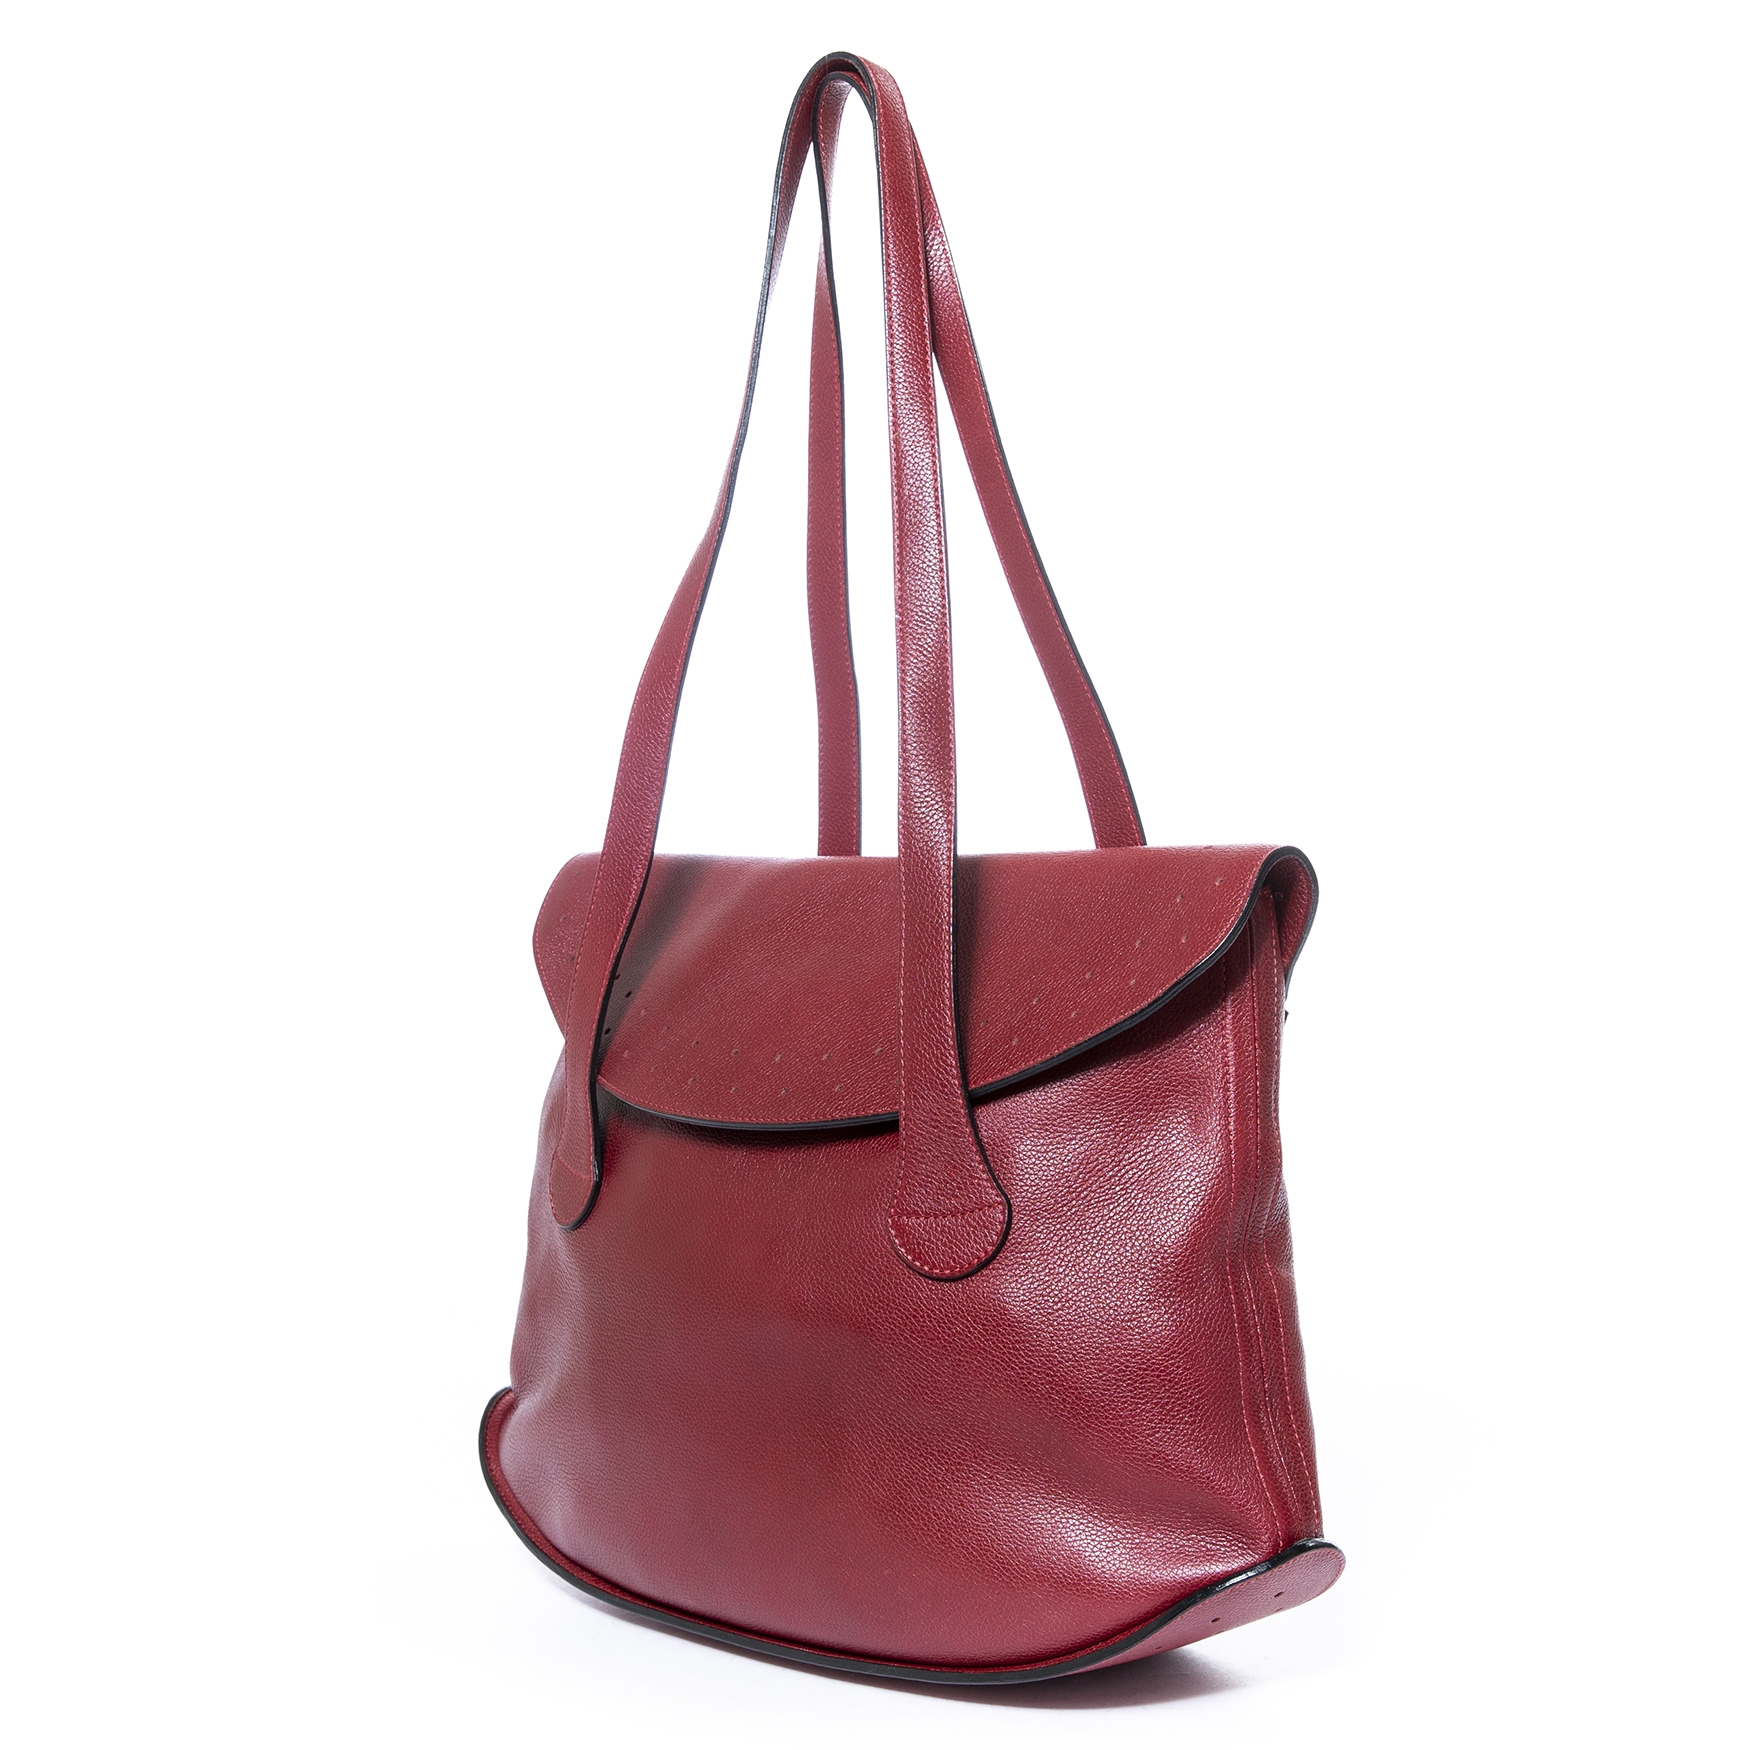 Delvaux Red Leather Shopper for sale